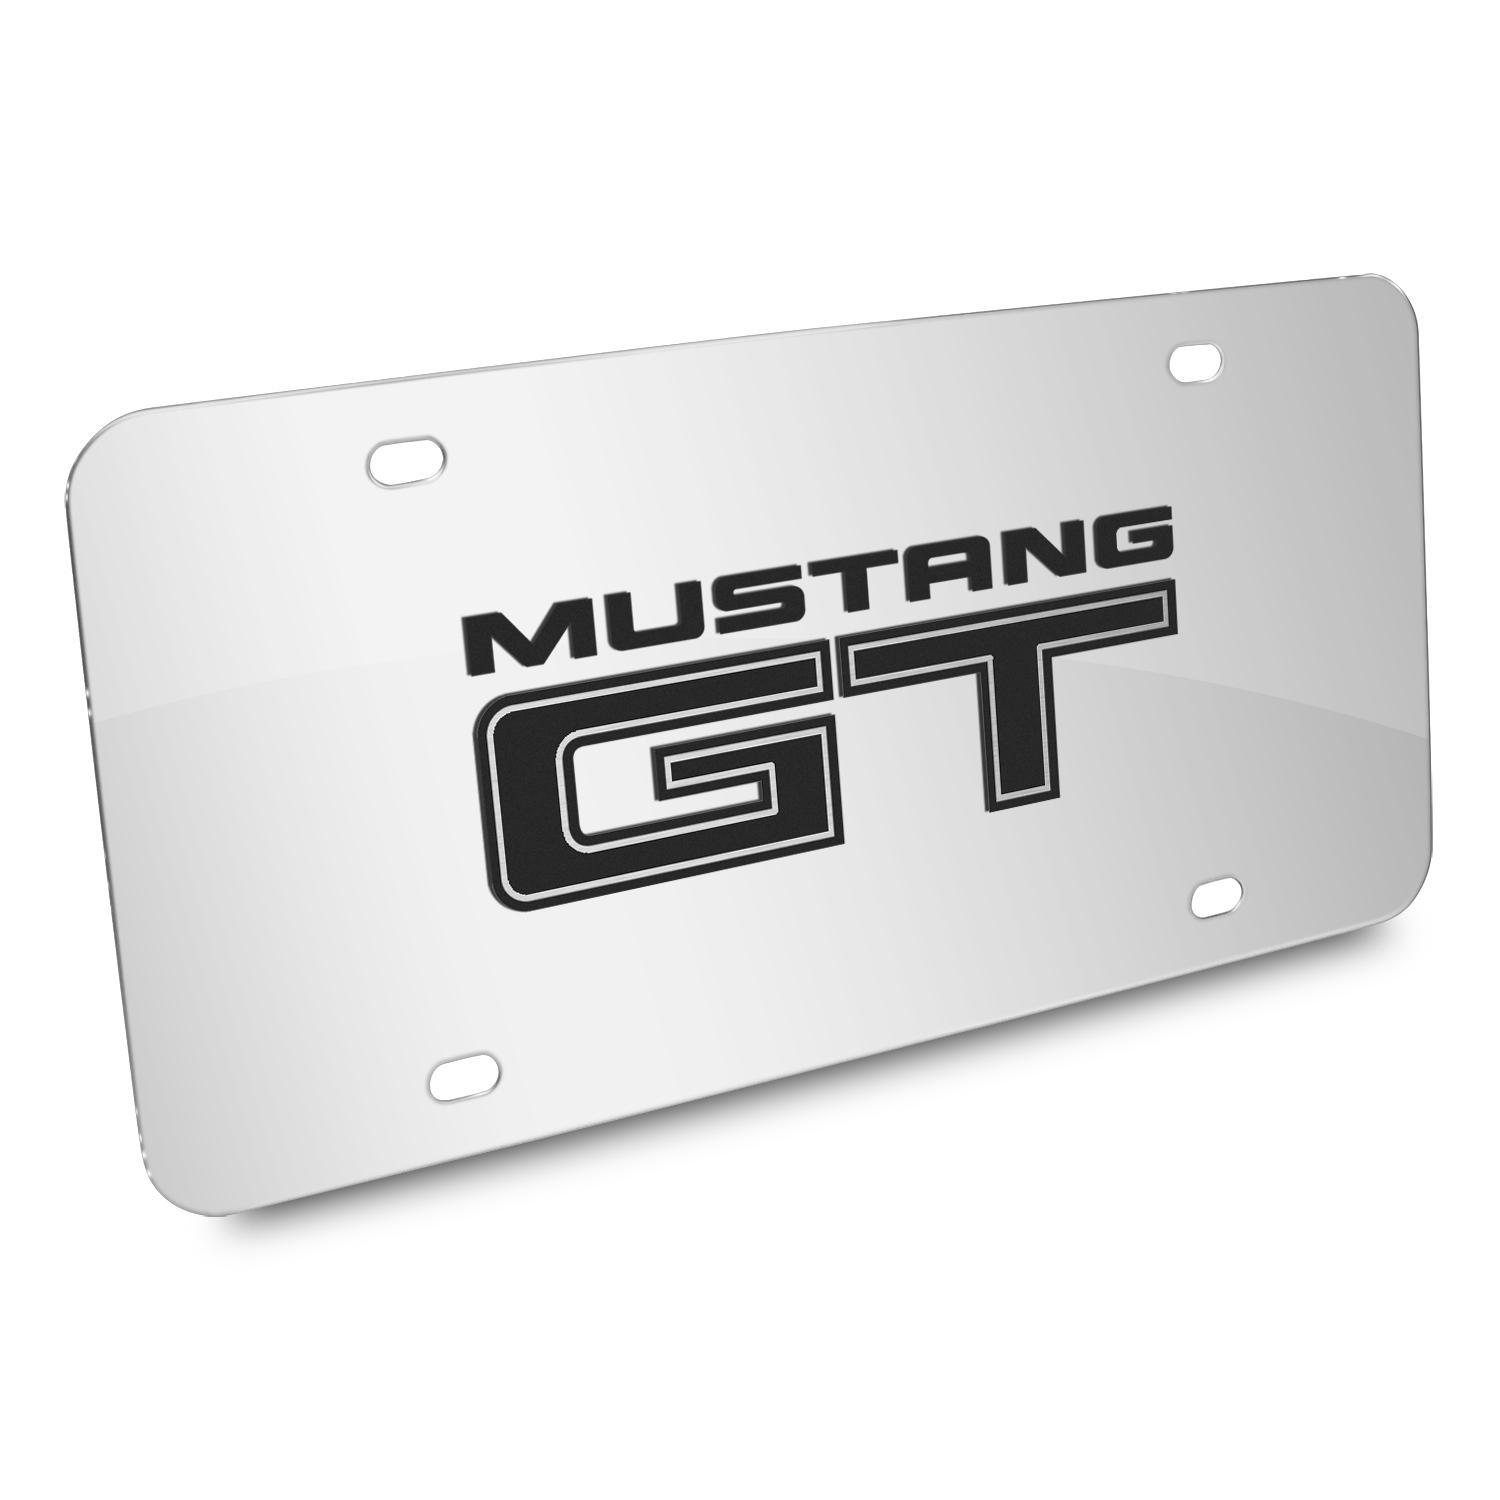 Ford Mustang GT 3D Mirror Chrome Stainless Steel License Plate